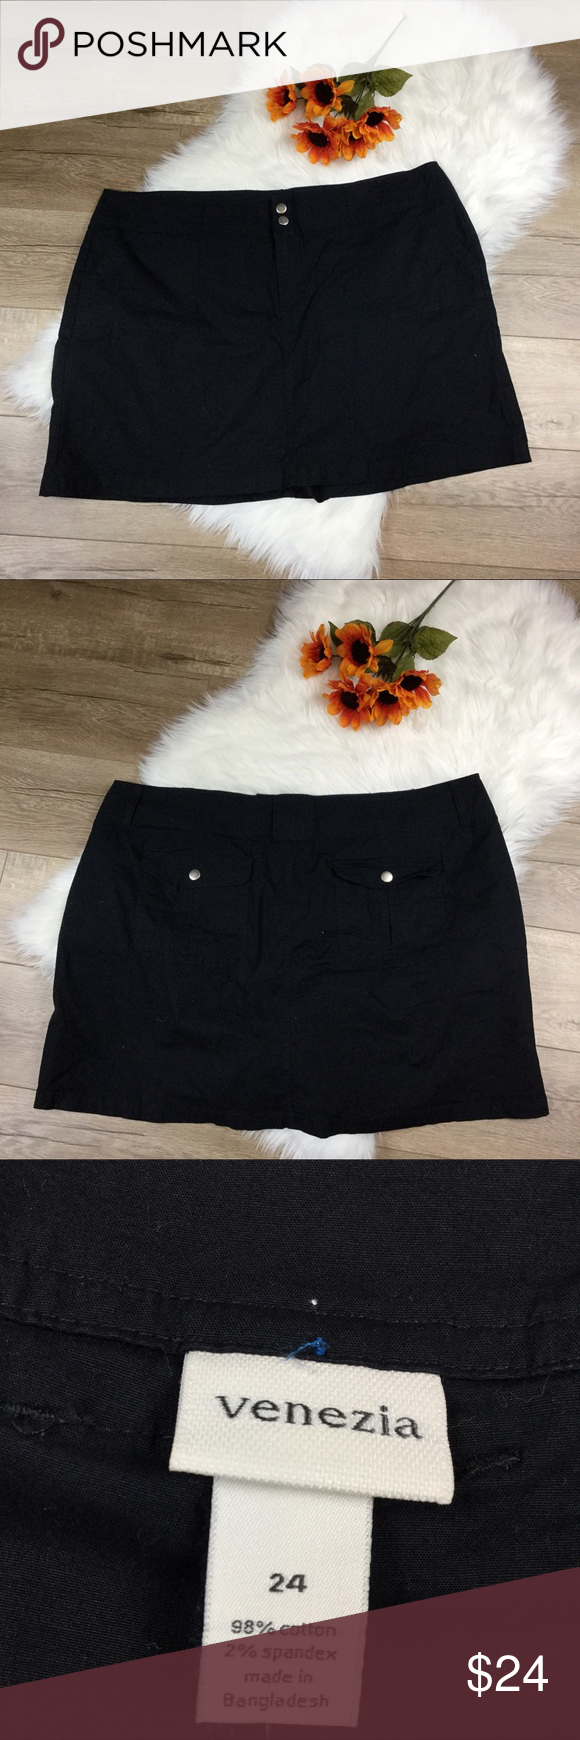 Venezia black short with pockets Is it a skirt, or a pair of shorts? It's both! Combine the look of a skirt with the comfort of shorts. Black light weight cotton material, size 24 skirt from Venezia. Has open front pockets and back putting closure pockets. Measurements available in photos posted. Bundle with any other item in my closet to save 20%! Venezia Shorts Skorts